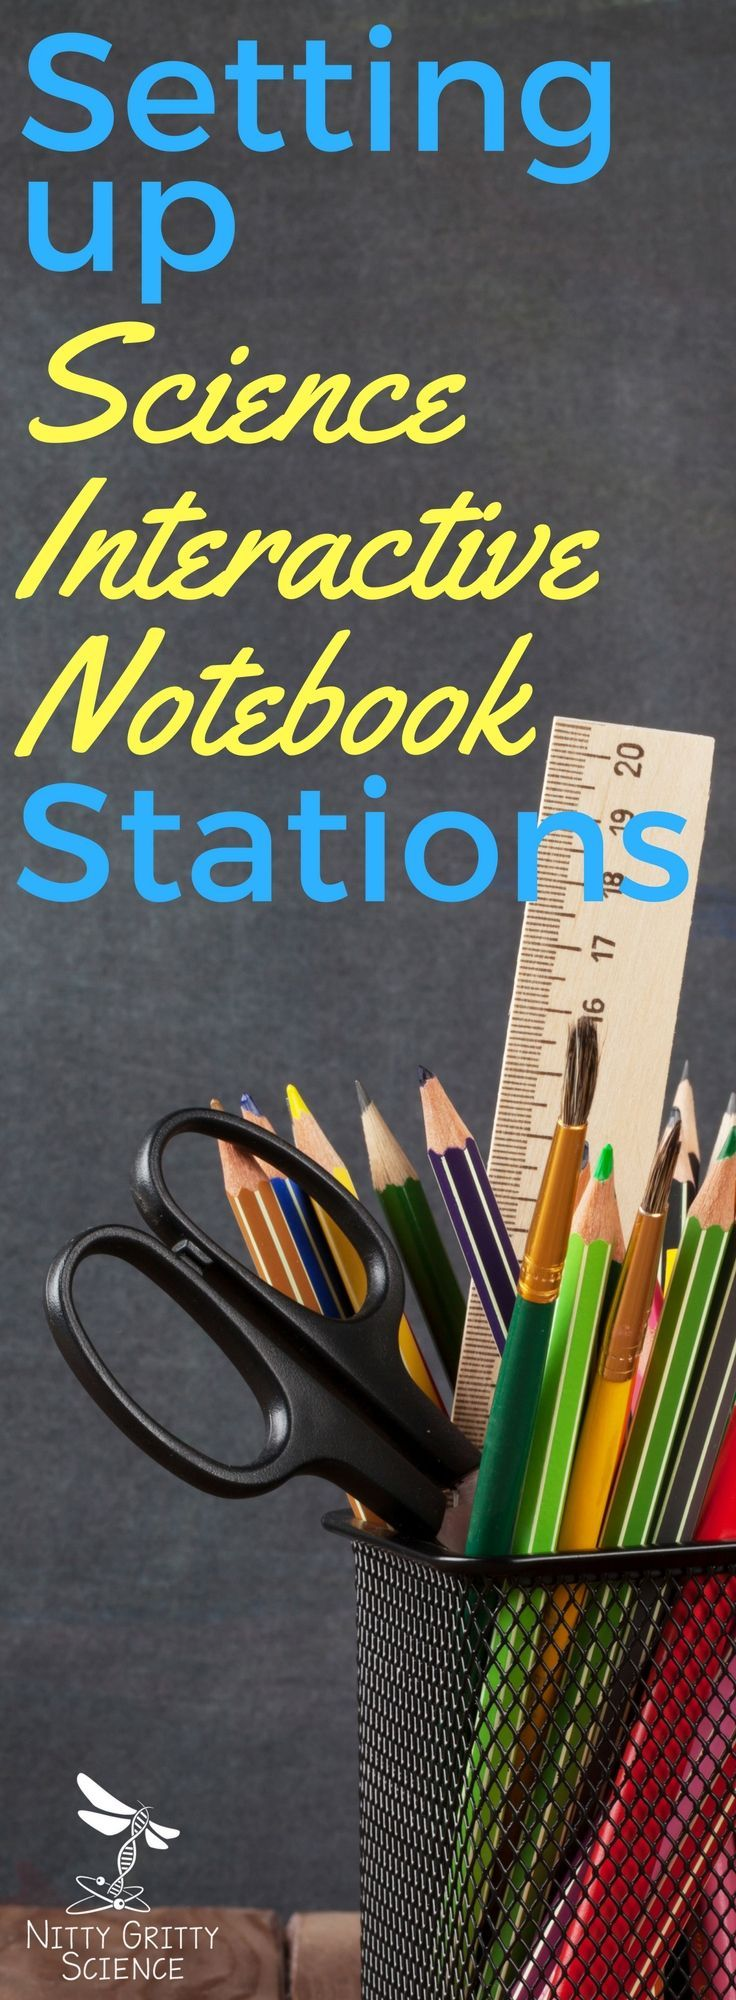 Having organized stations is a sure-fire way to be successful during the school year.  My notebook stations are the same as my lab stations so the students know which station to go to when it's time to work on their notebooks.